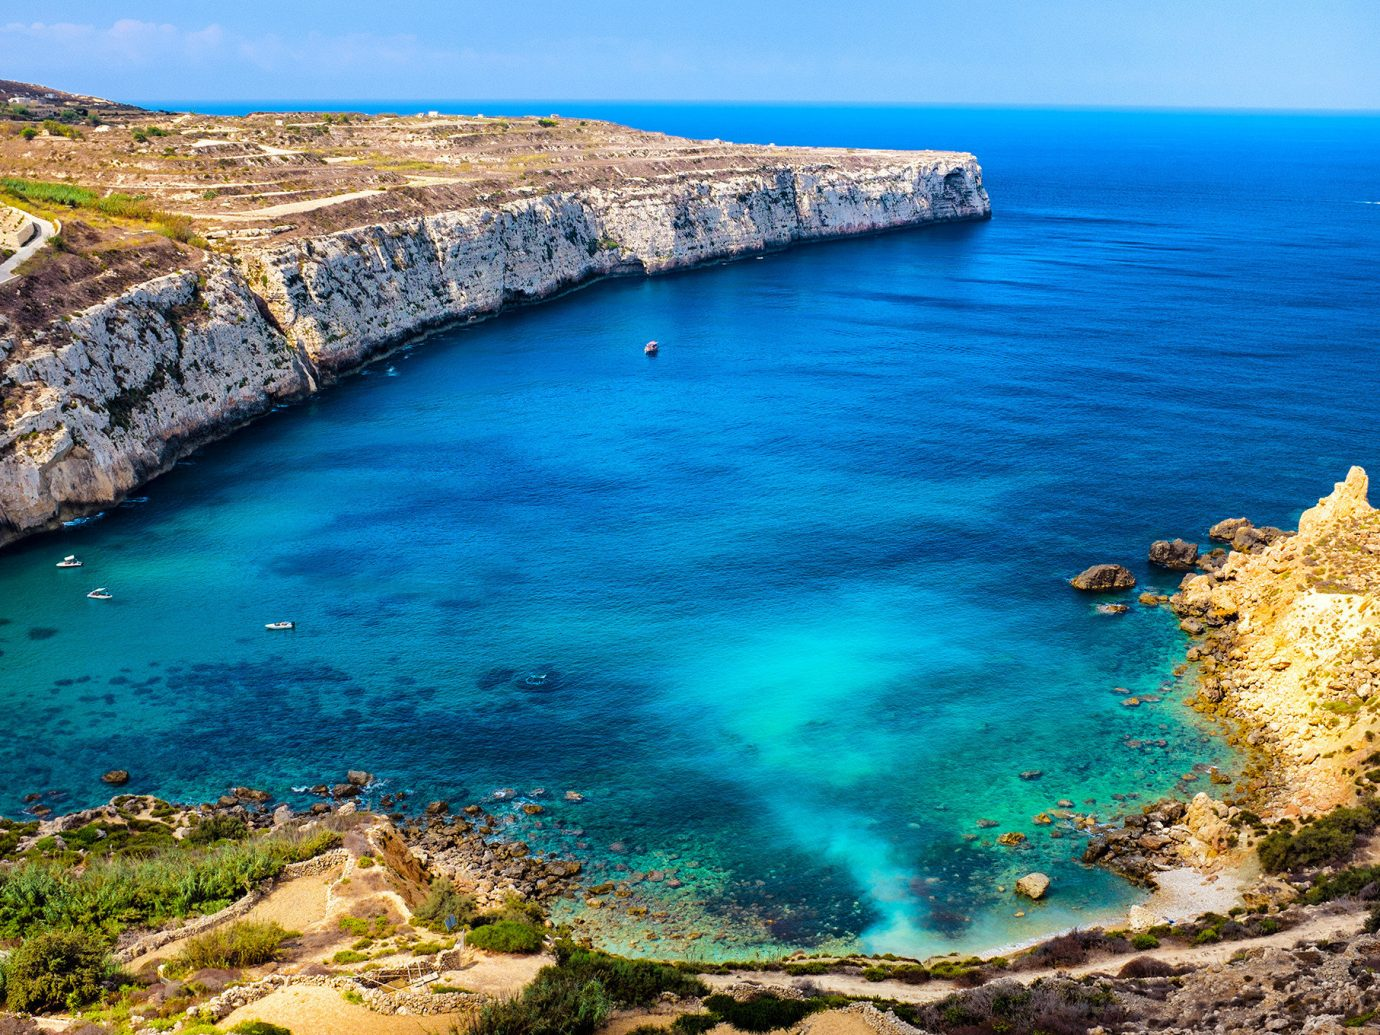 europe Trip Ideas water outdoor sky rock mountain Coast Sea Nature rocky shore body of water landform geographical feature Ocean Beach cliff bay cove terrain cape landscape islet Lagoon Island surrounded hillside stone